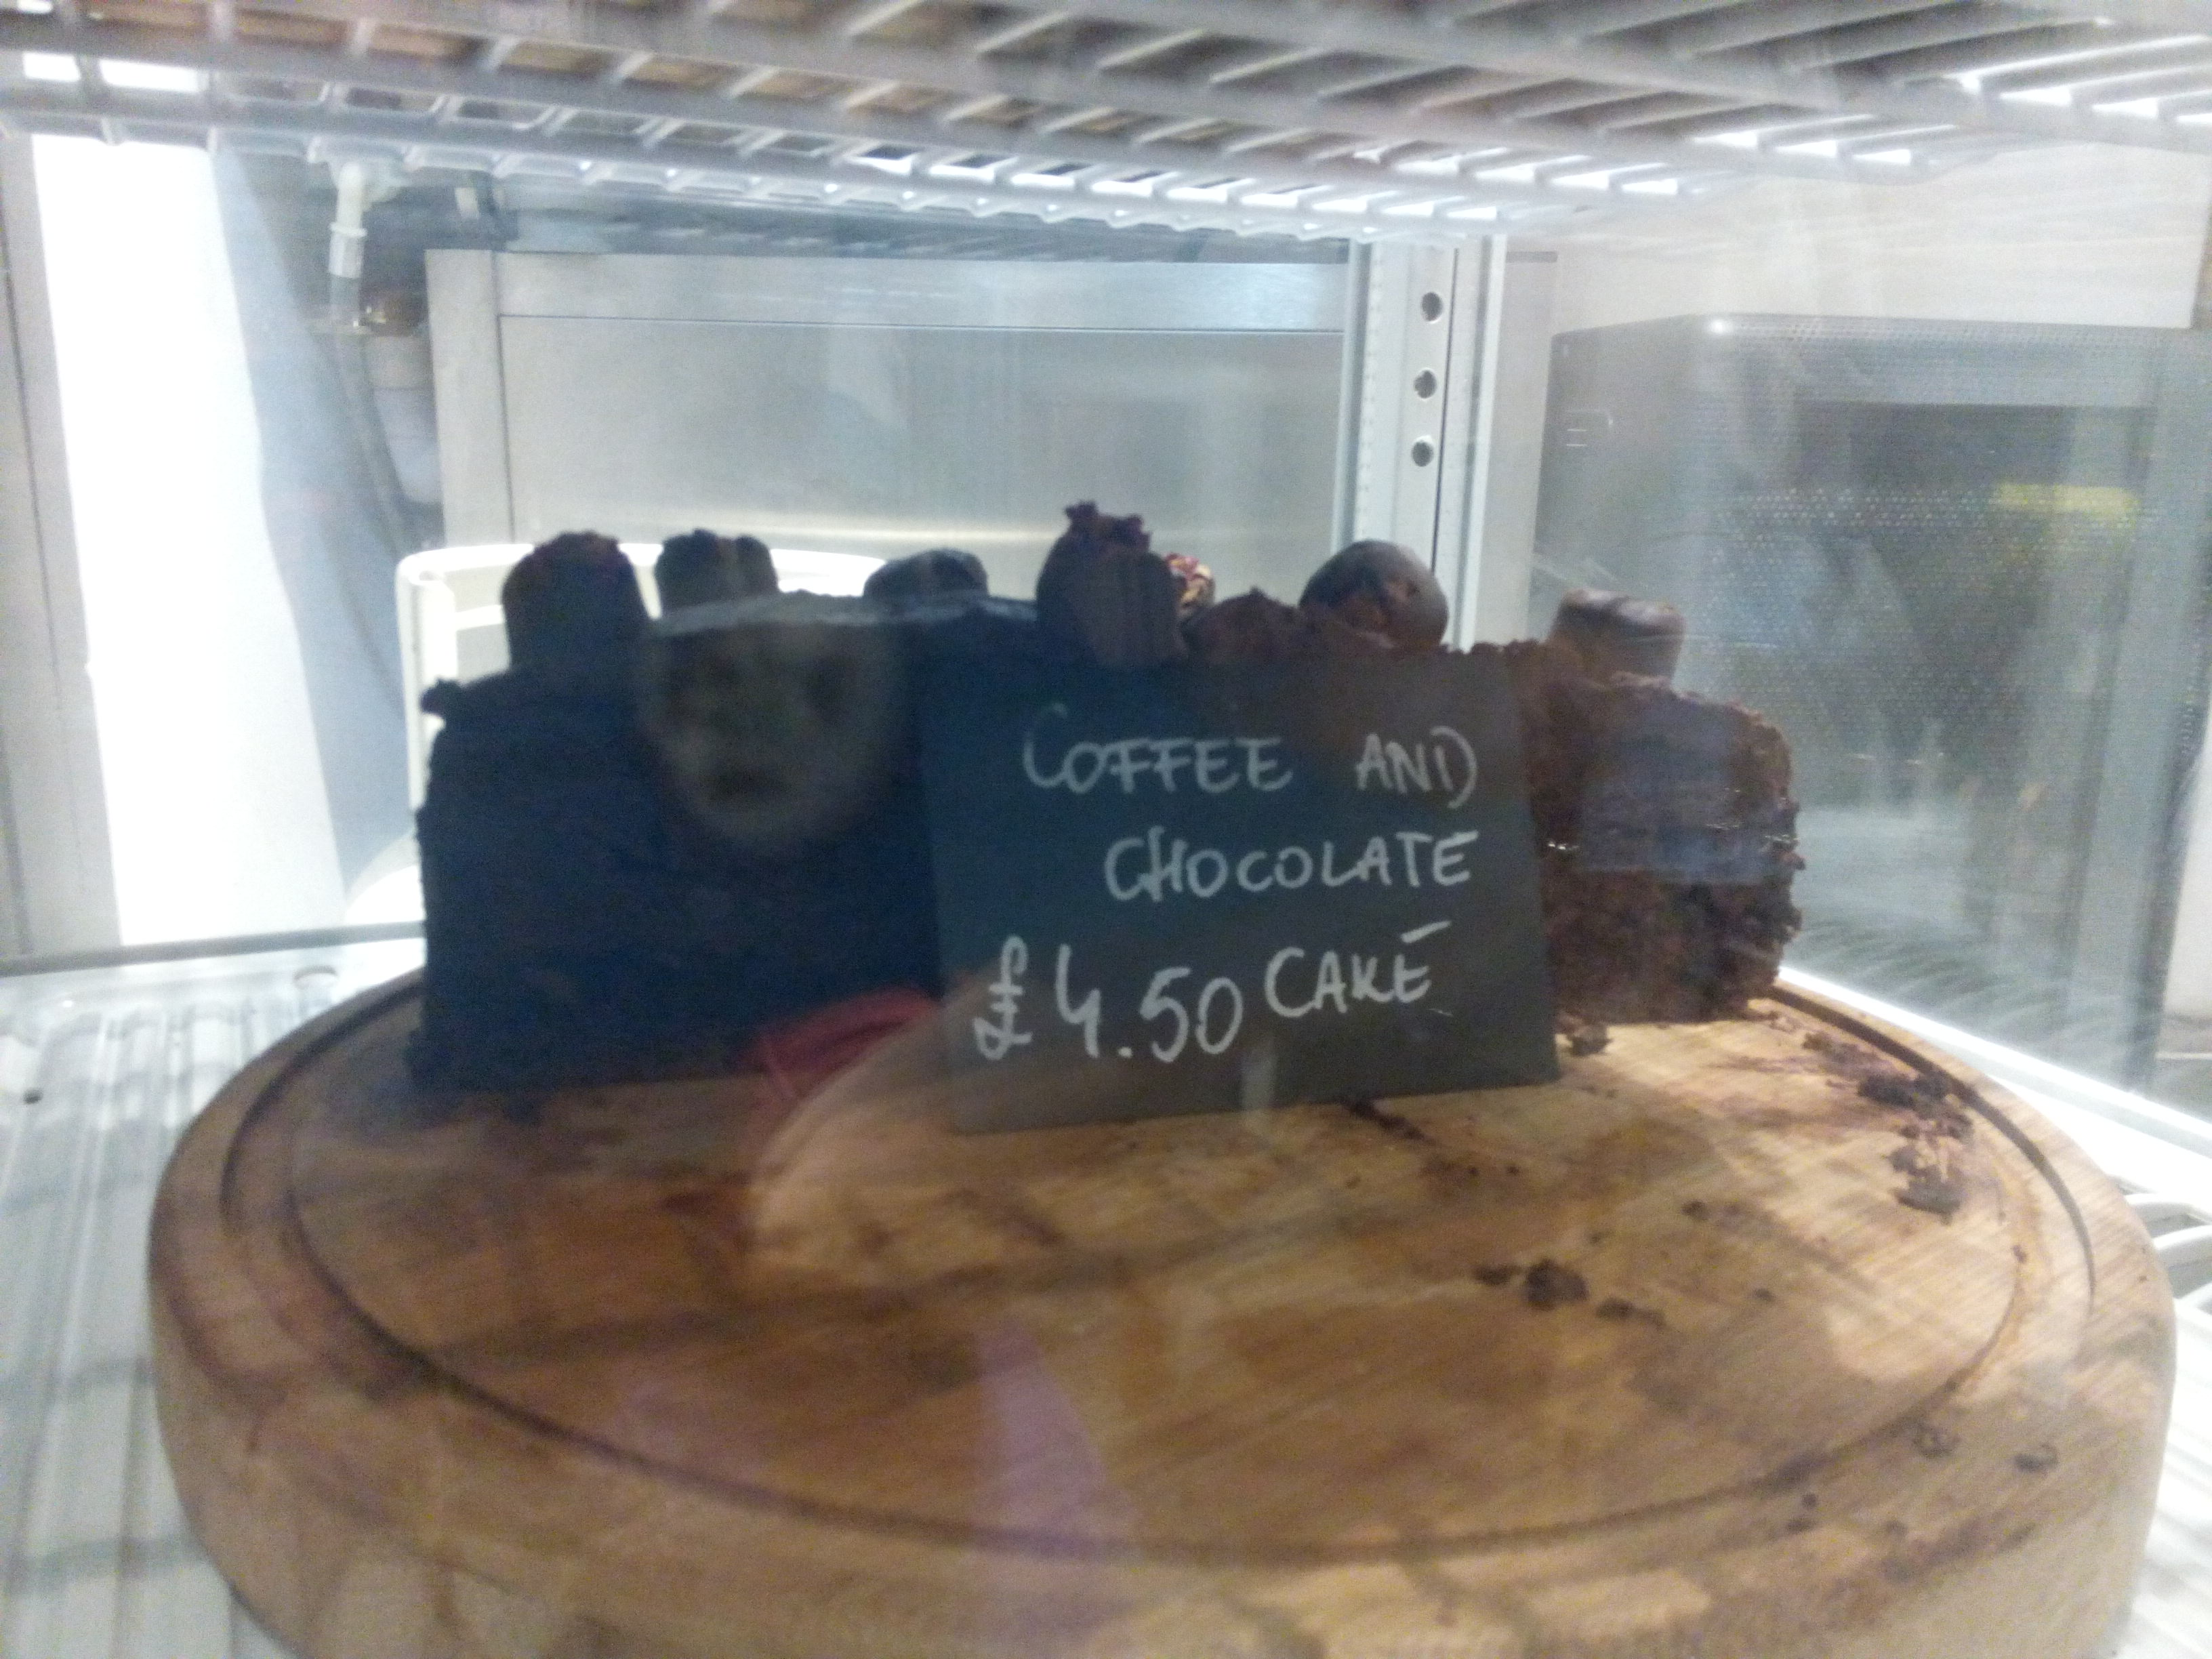 Chocolate coffee cake behind glass